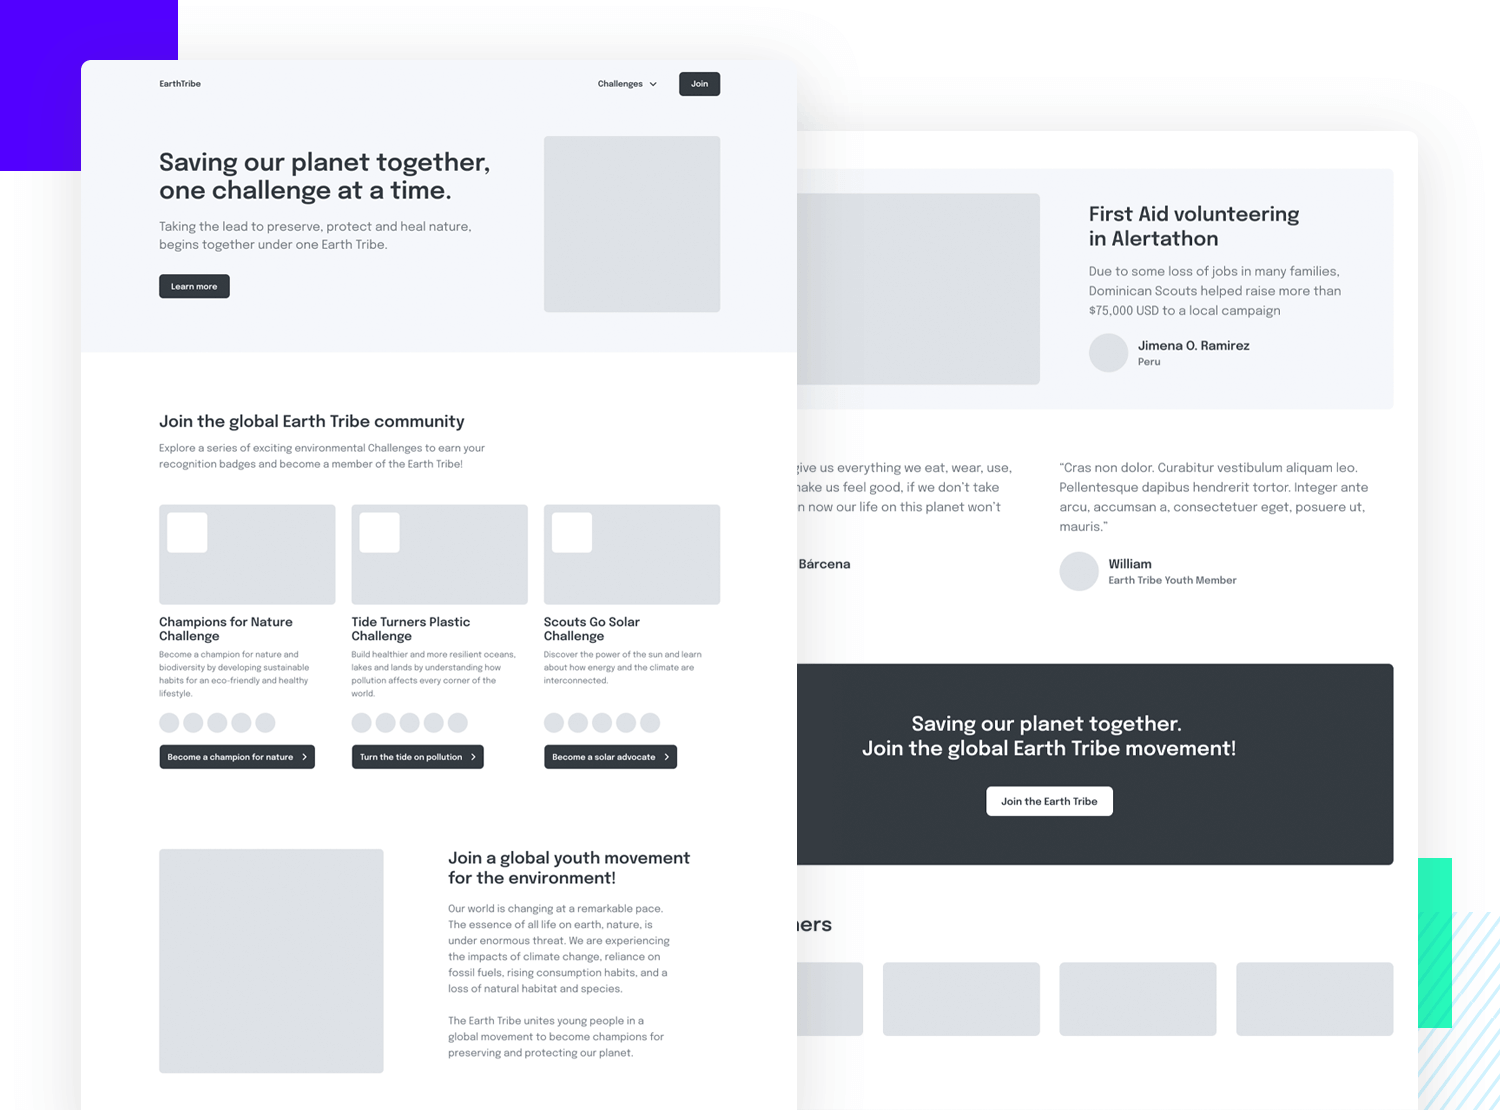 wireframing as a part of ui design